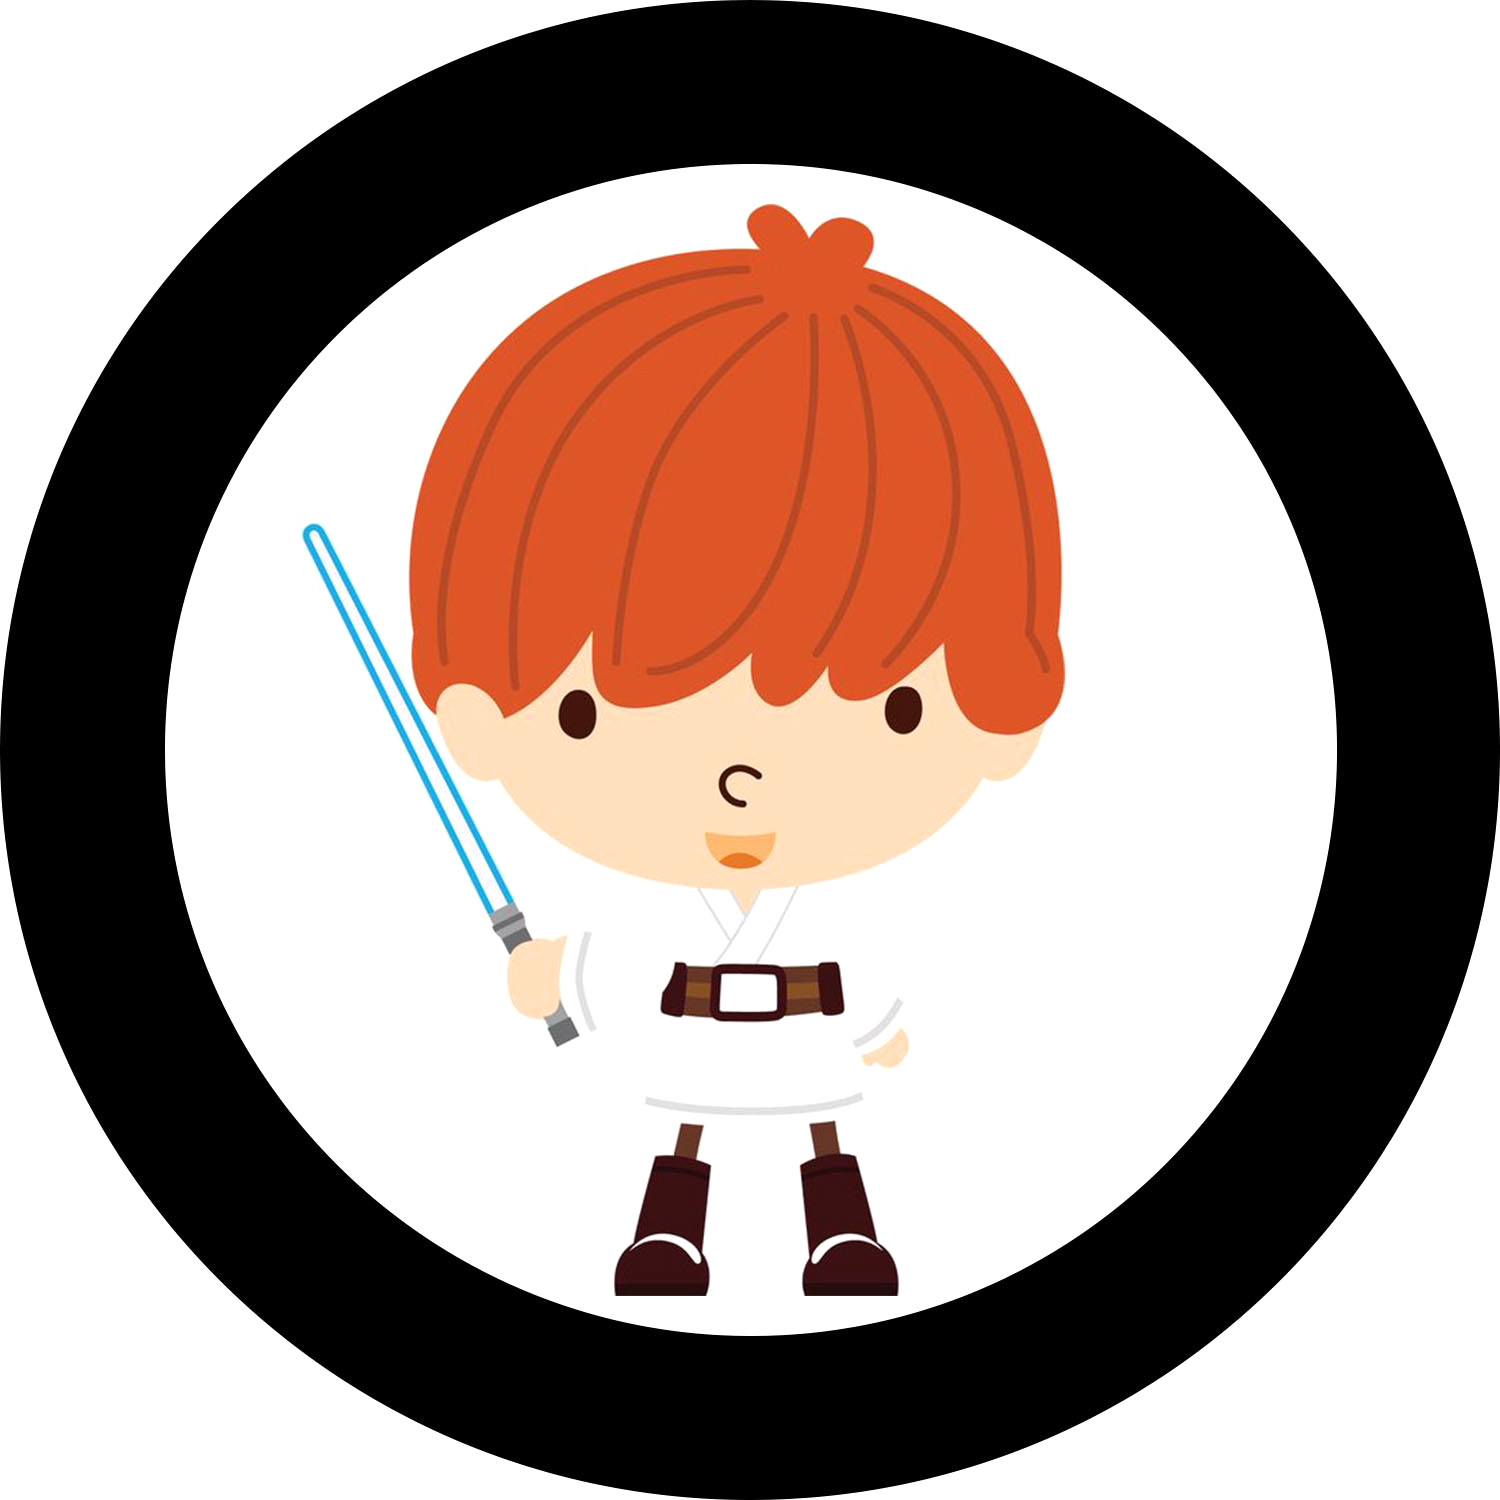 1500x1500 Free Star Wars Clip Art Jkfloodrelief Org Prepossessing